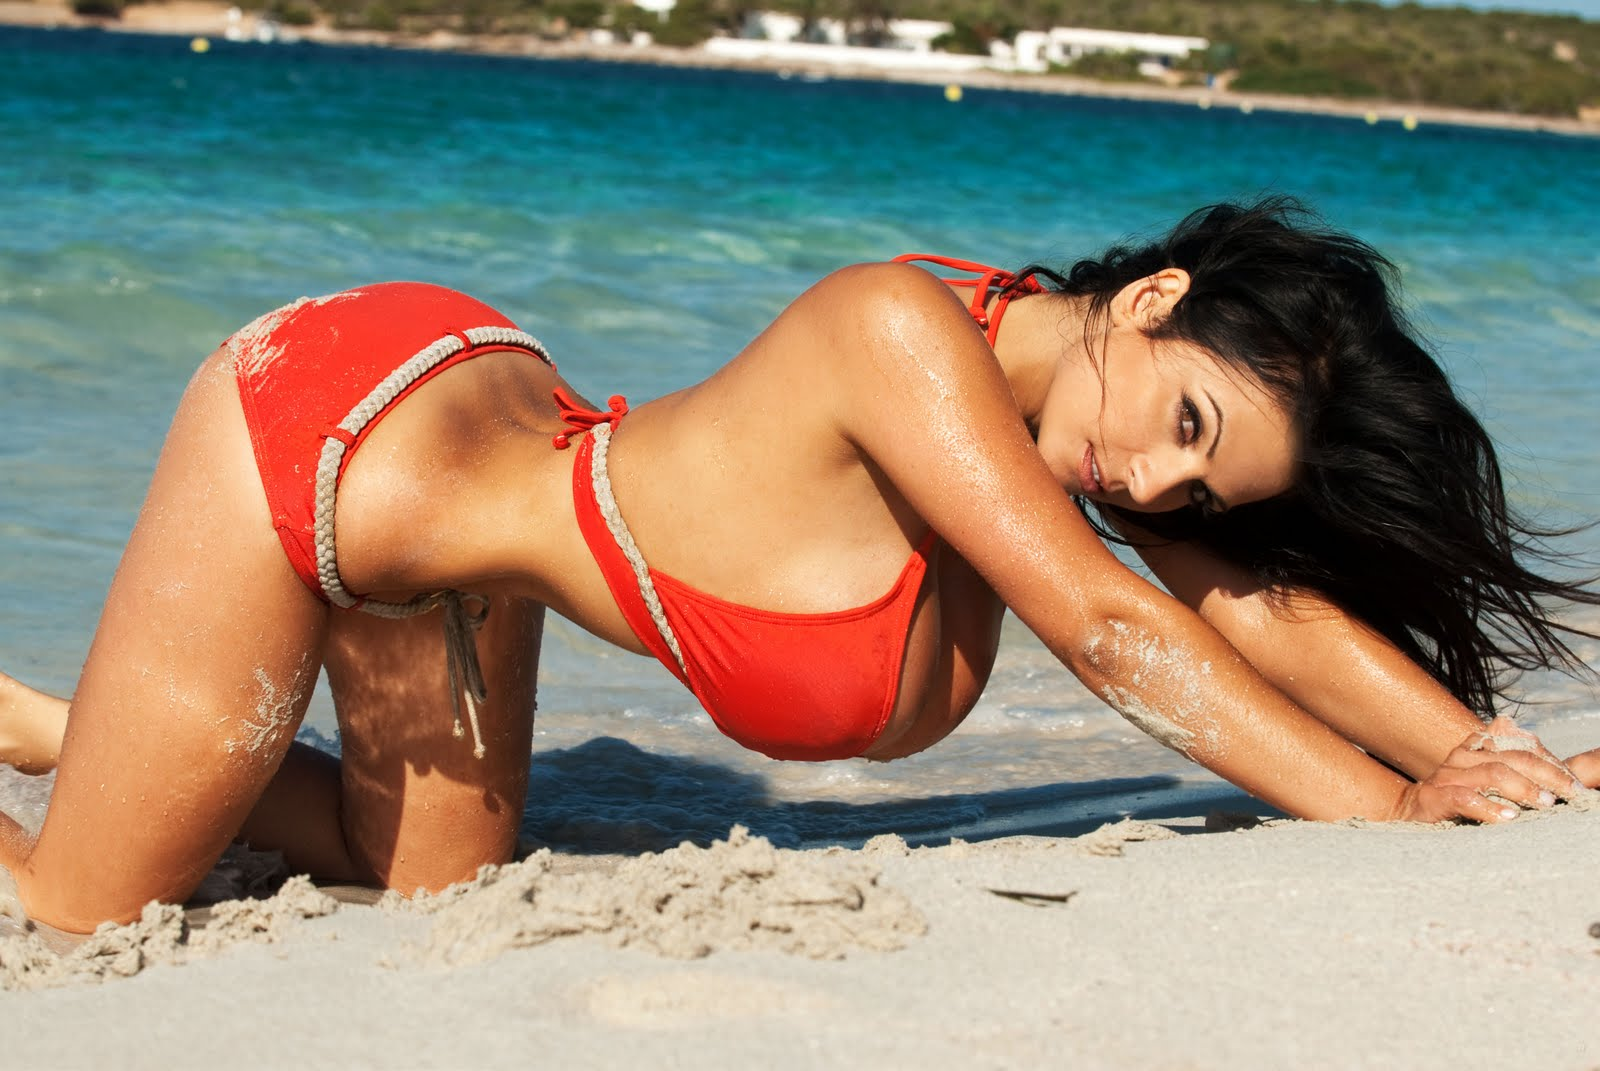 Face Wallpapers: Denise Milani Wallpapers